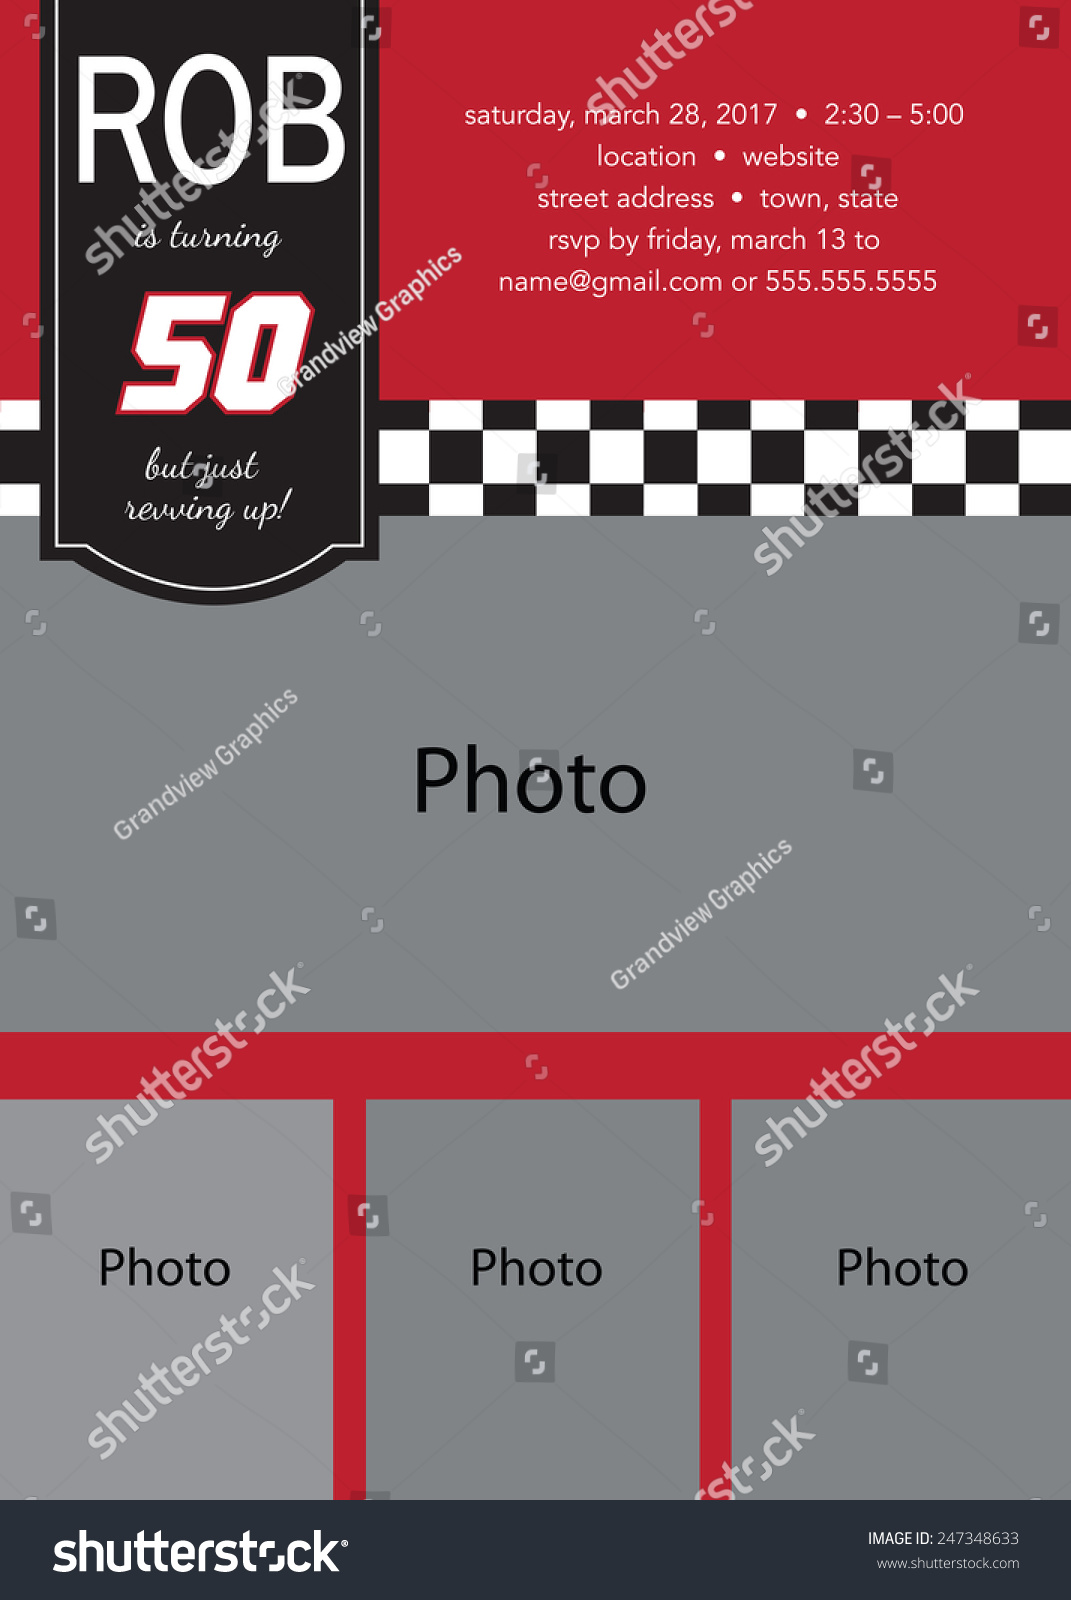 Gmail theme template - 50th Birthday Party Photo Template Racing Theme Vector File